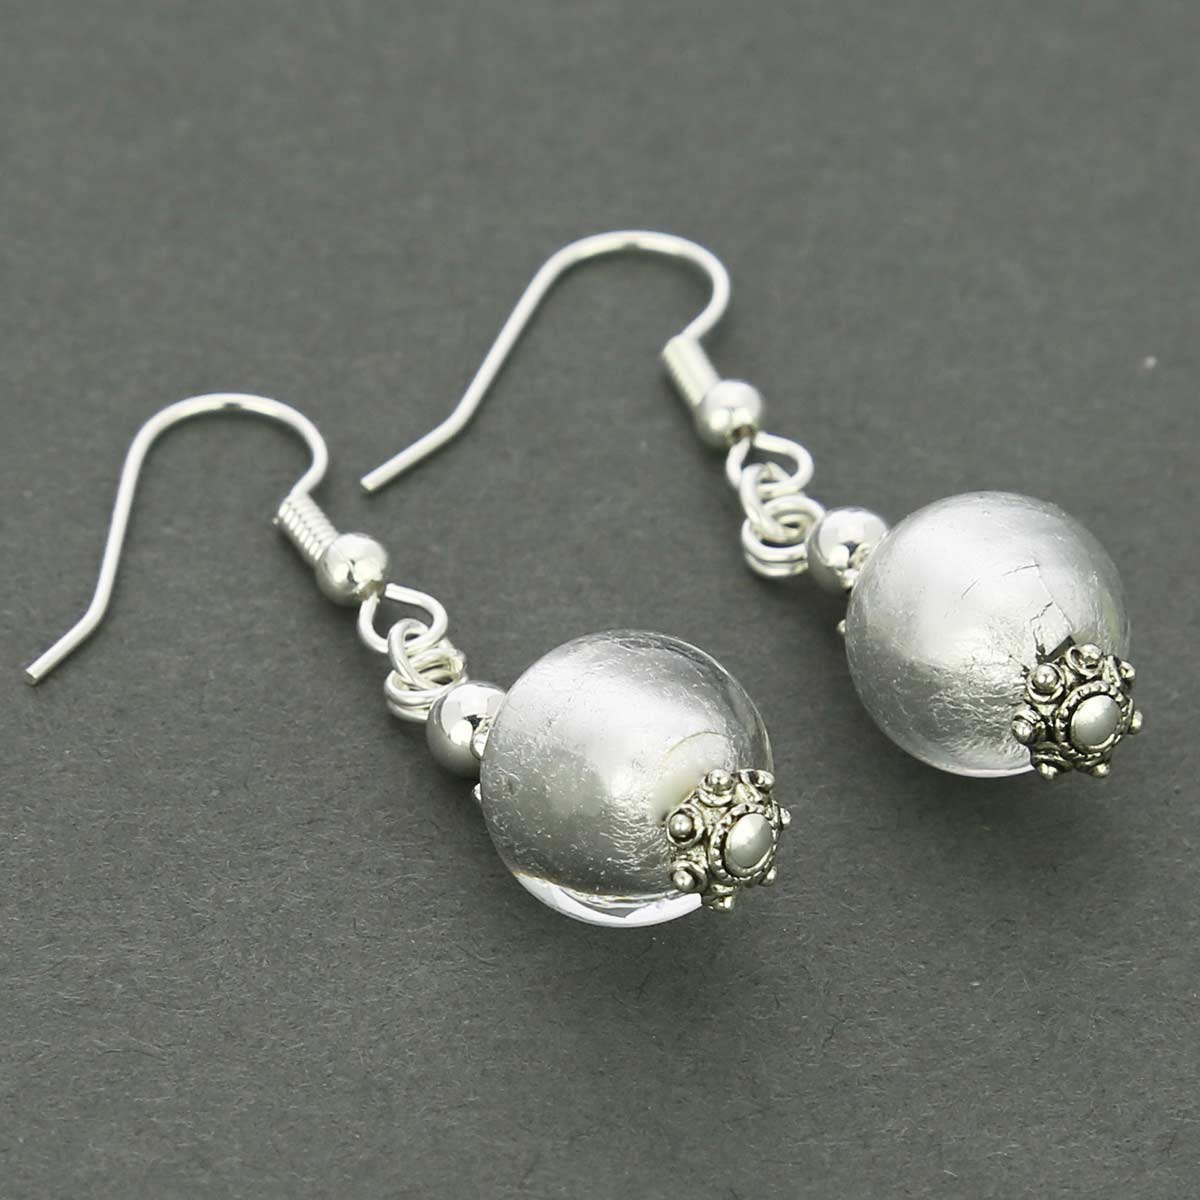 Antico Tesoro Balls Earrings - Silver White